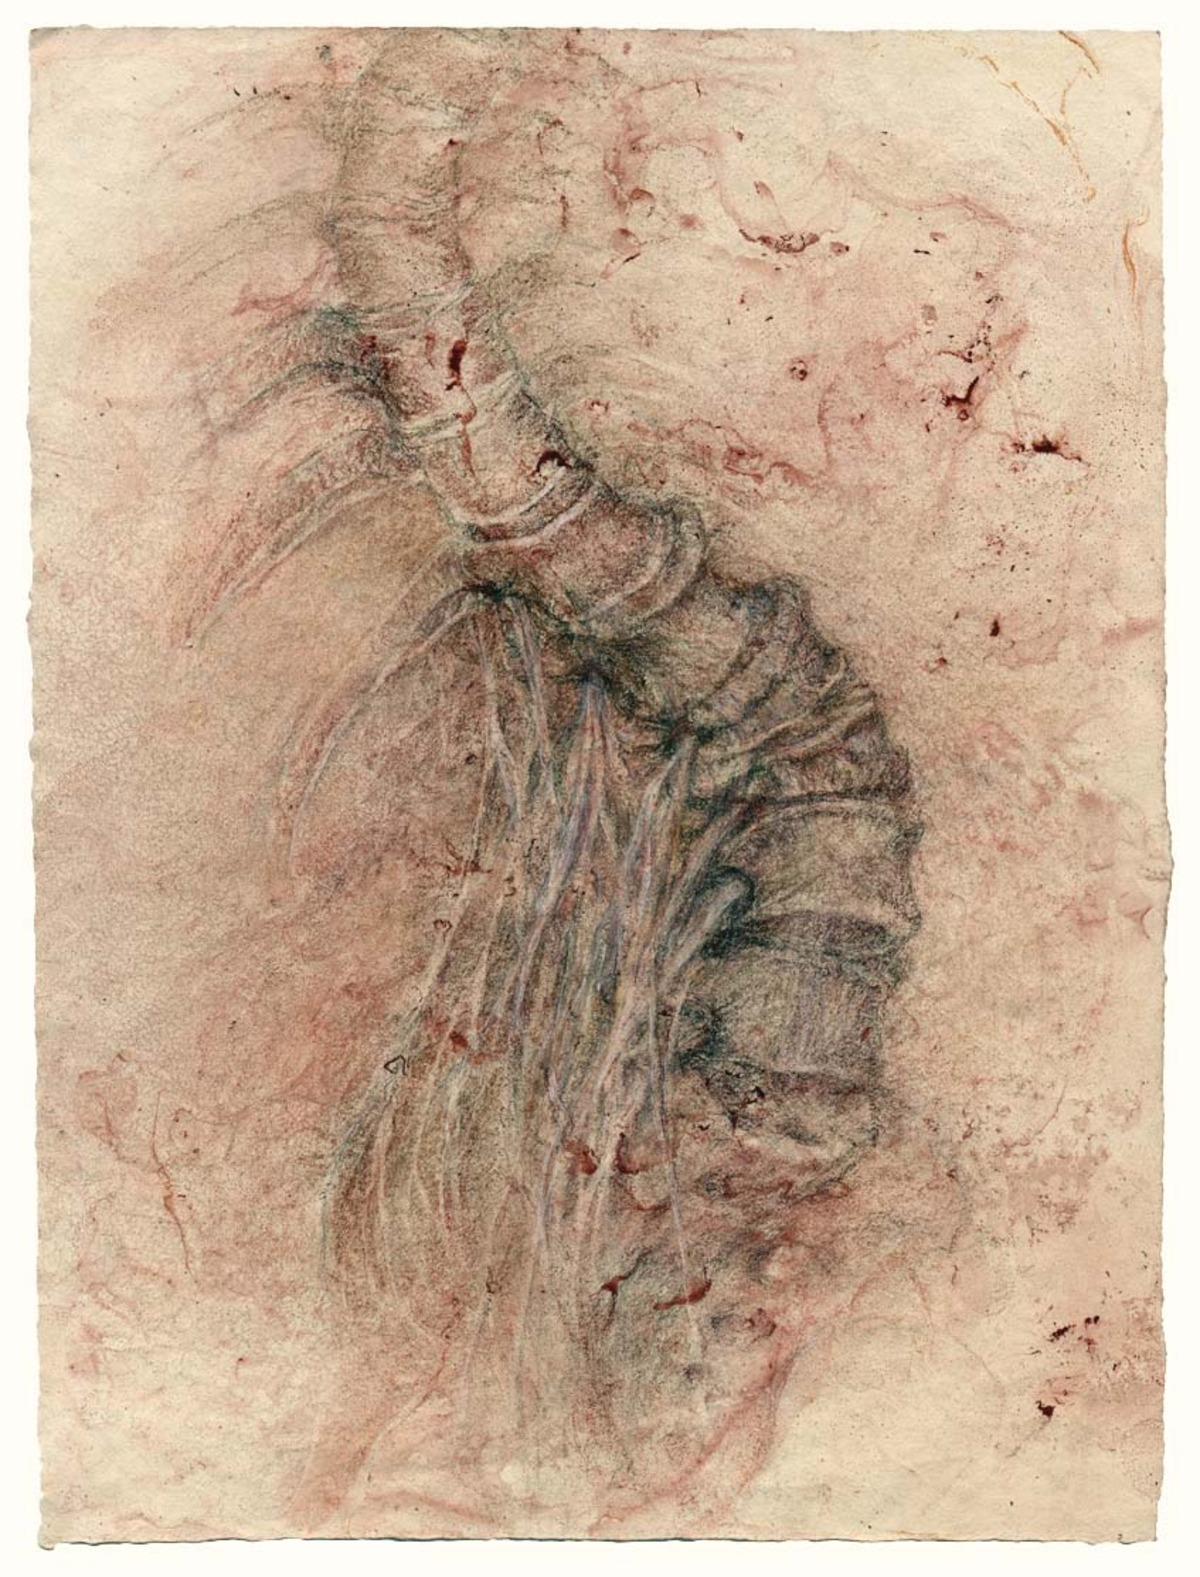 Turning vertebrae with spinal nerves (red), 15 x 11 in. $3,600